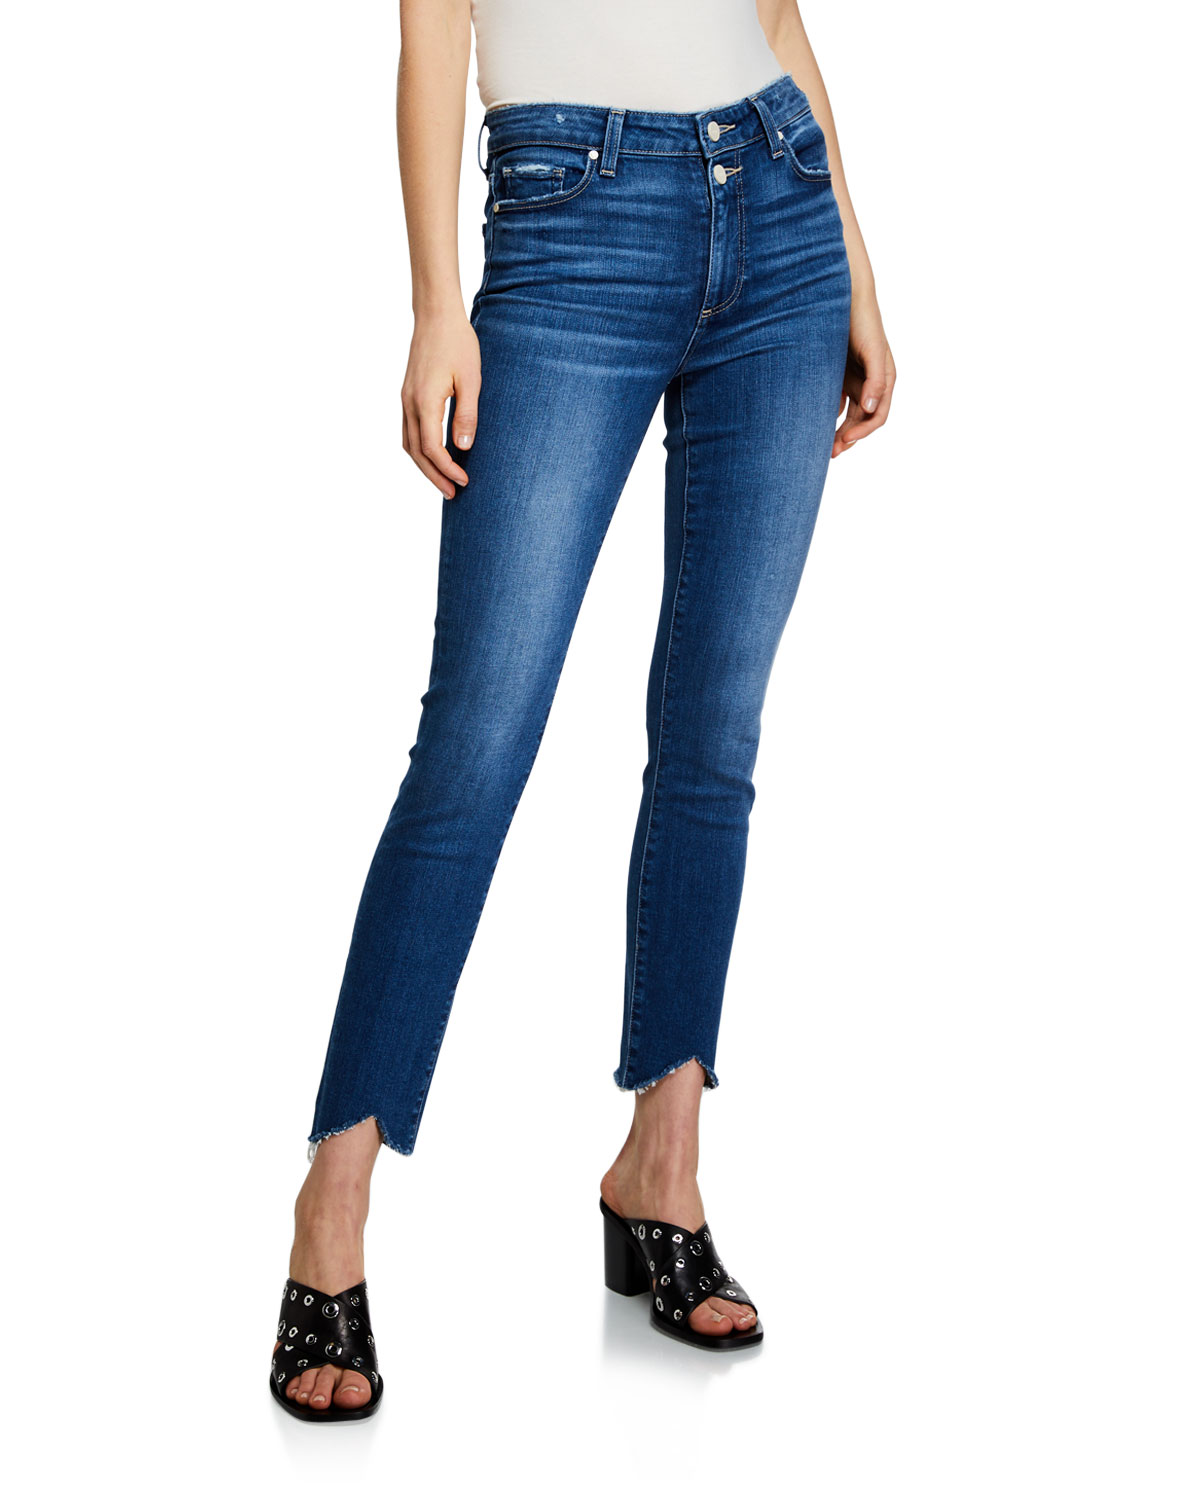 Paige Jeans HOXTON ANKLE-SPLIT SKINNY JEANS WITH DOUBLE BUTTONS